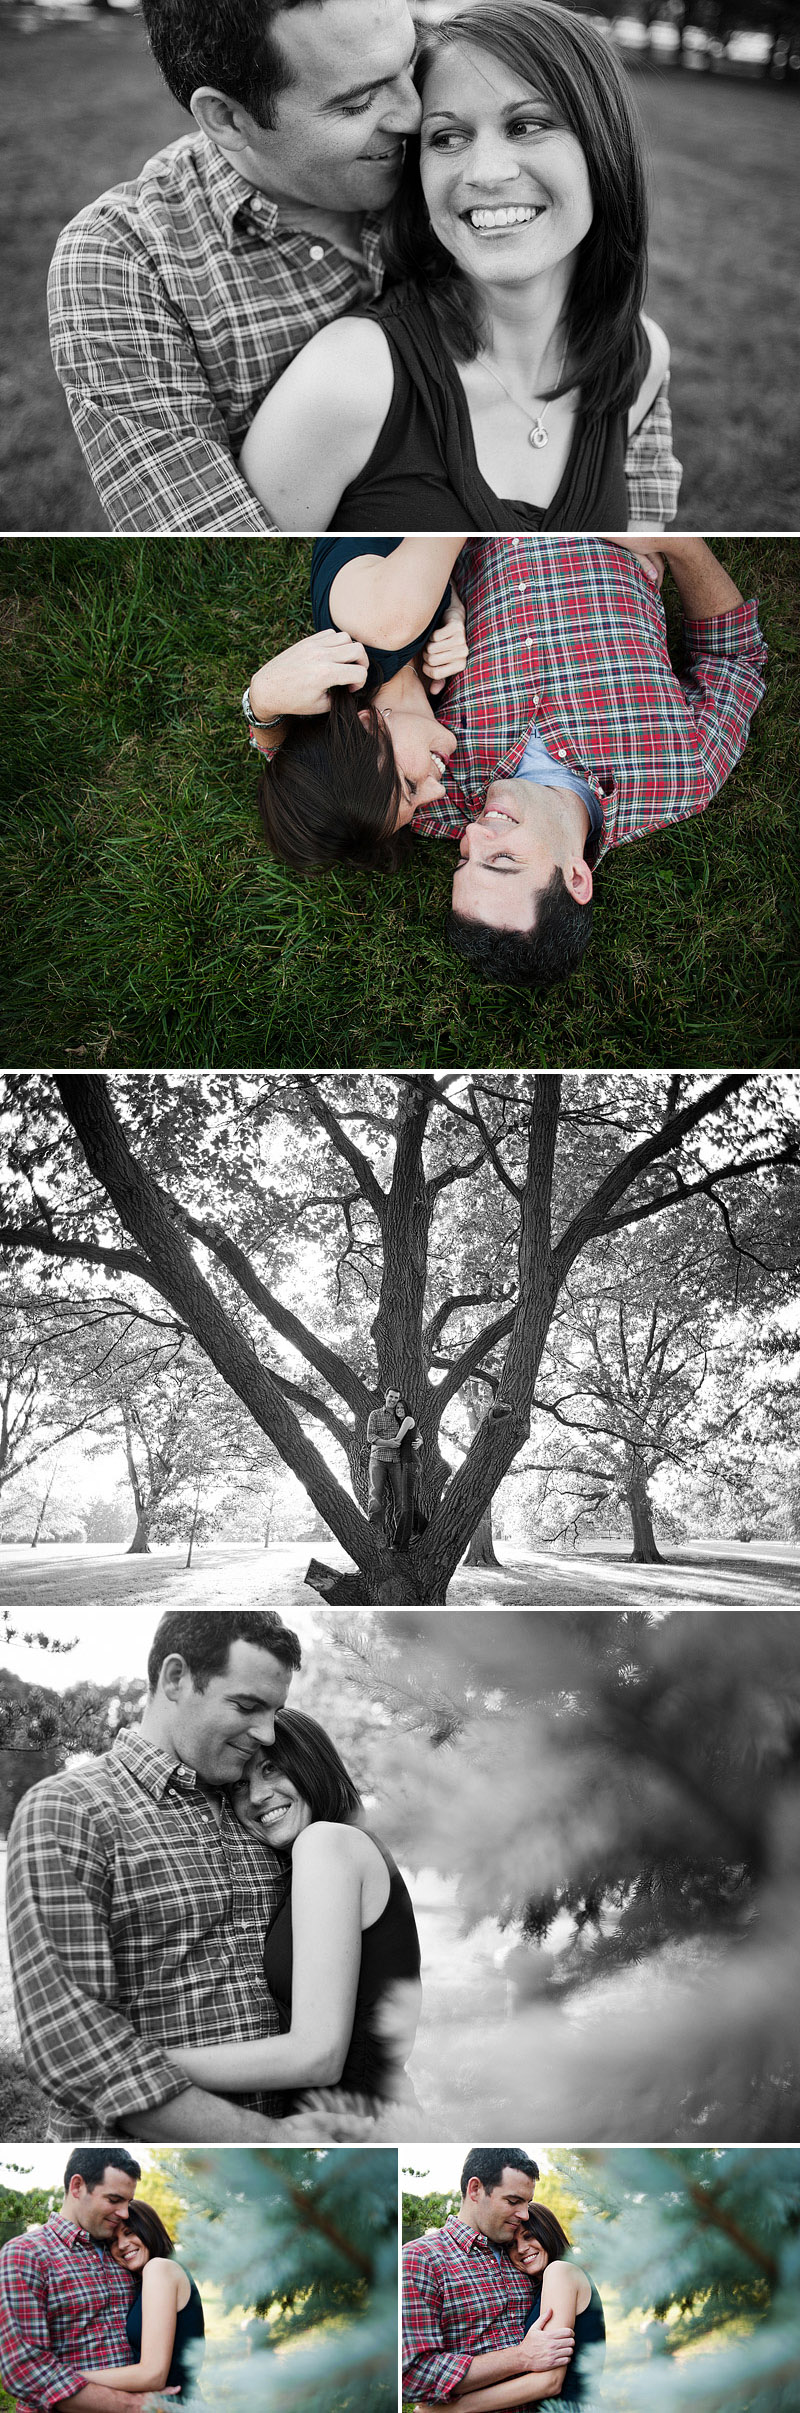 Awesome Loose Park engagement pictures.